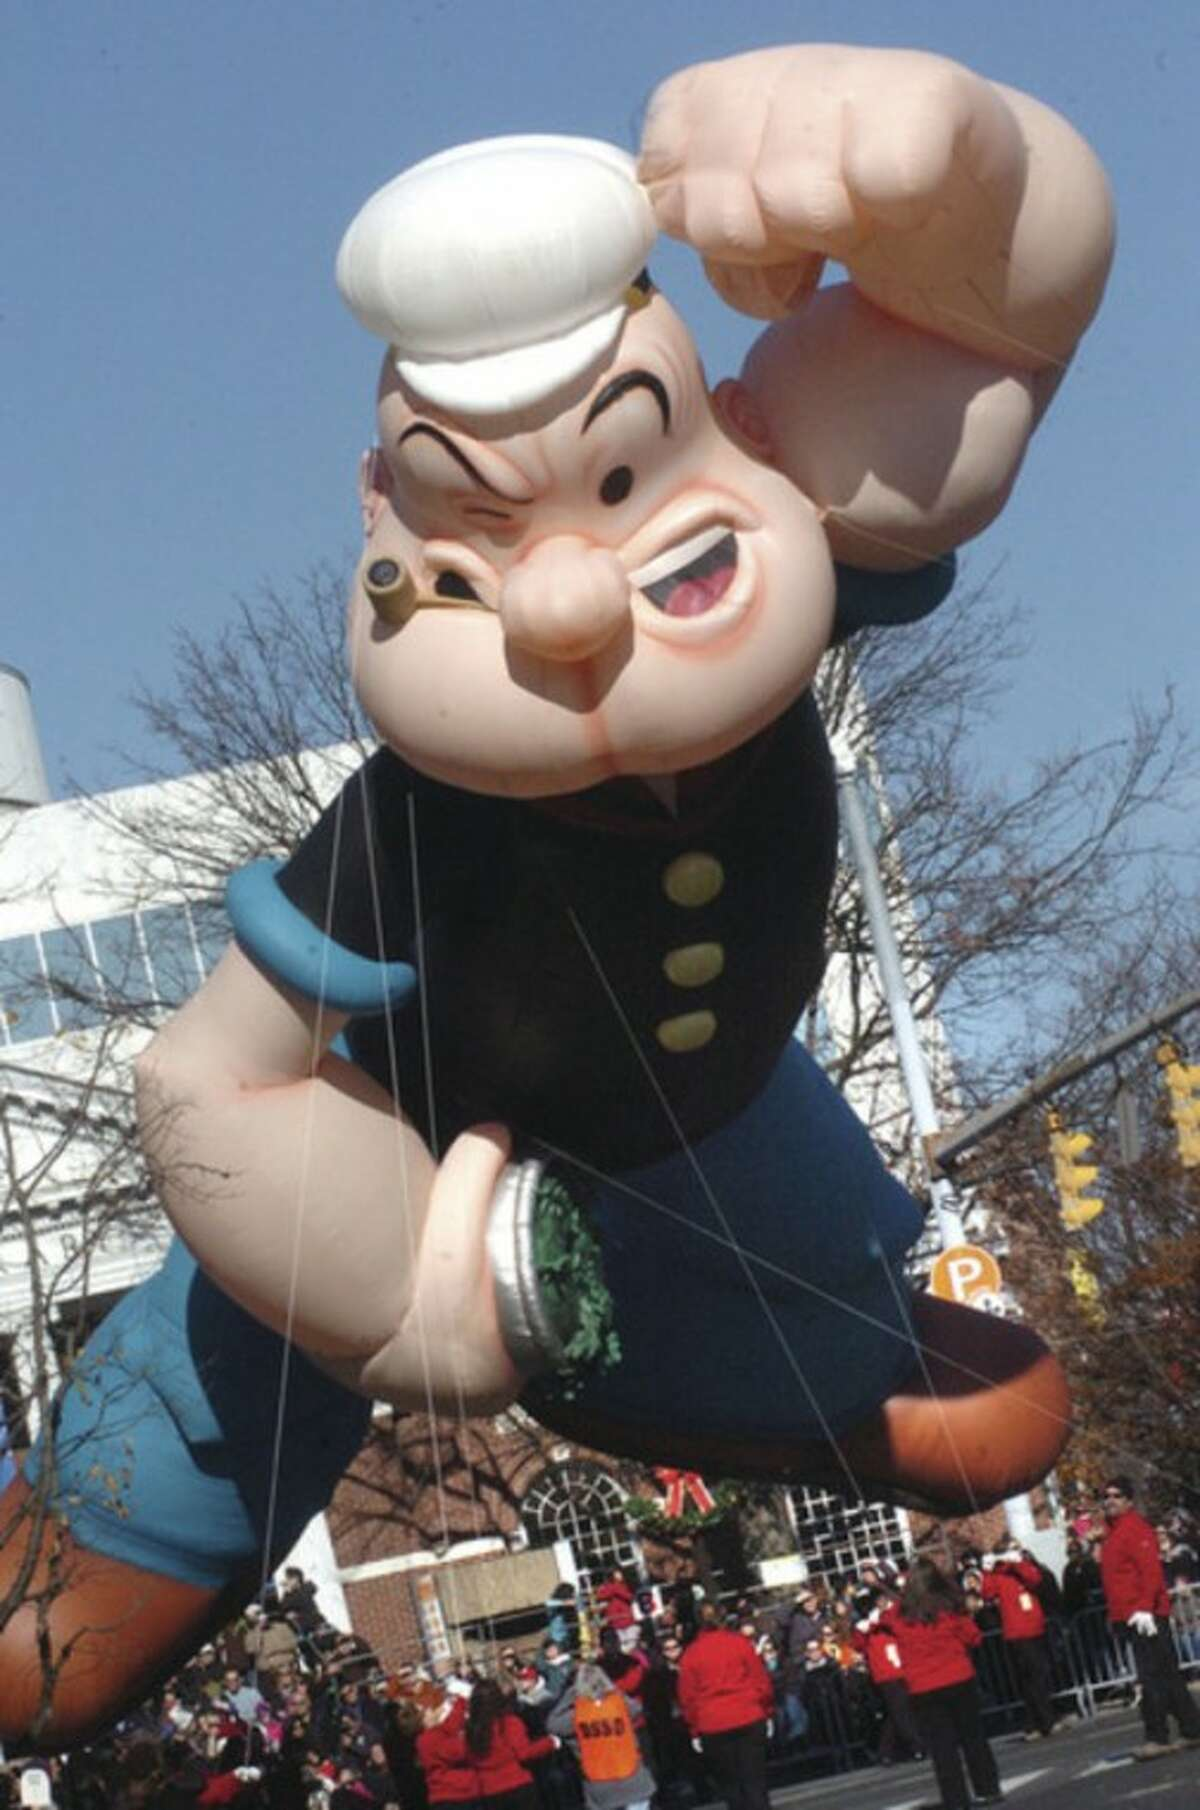 Hour photo / Matthew Vinci Popeye turns out on Atlantic Street in Stamford Sunday at the UBS Parade Spectacular.